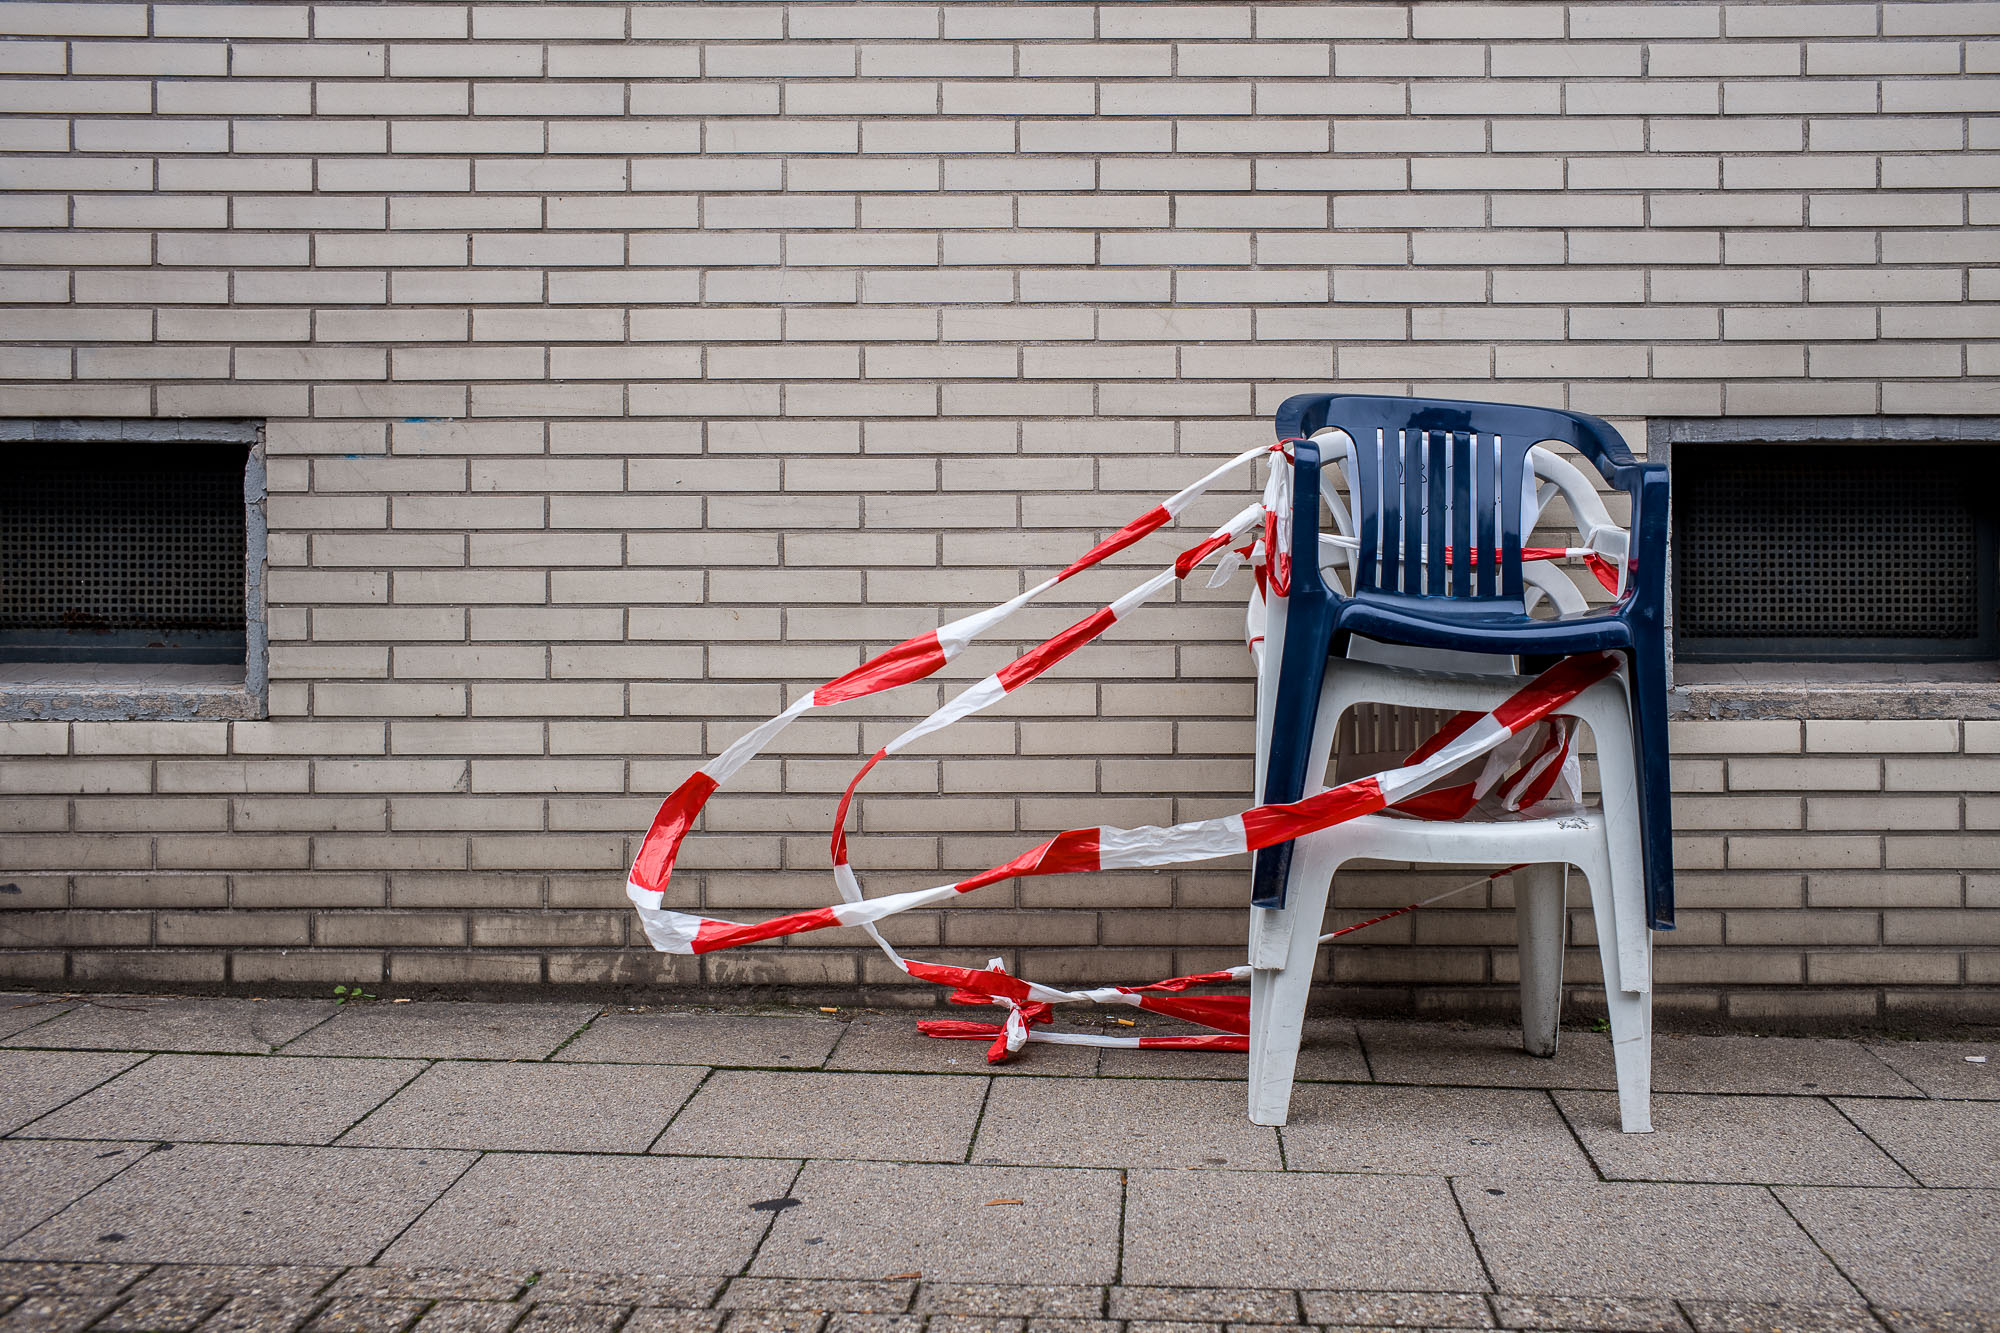 Stacked plastic chairs wrapped in barrier tape, that's blowing in the wind, a brick wall in the background